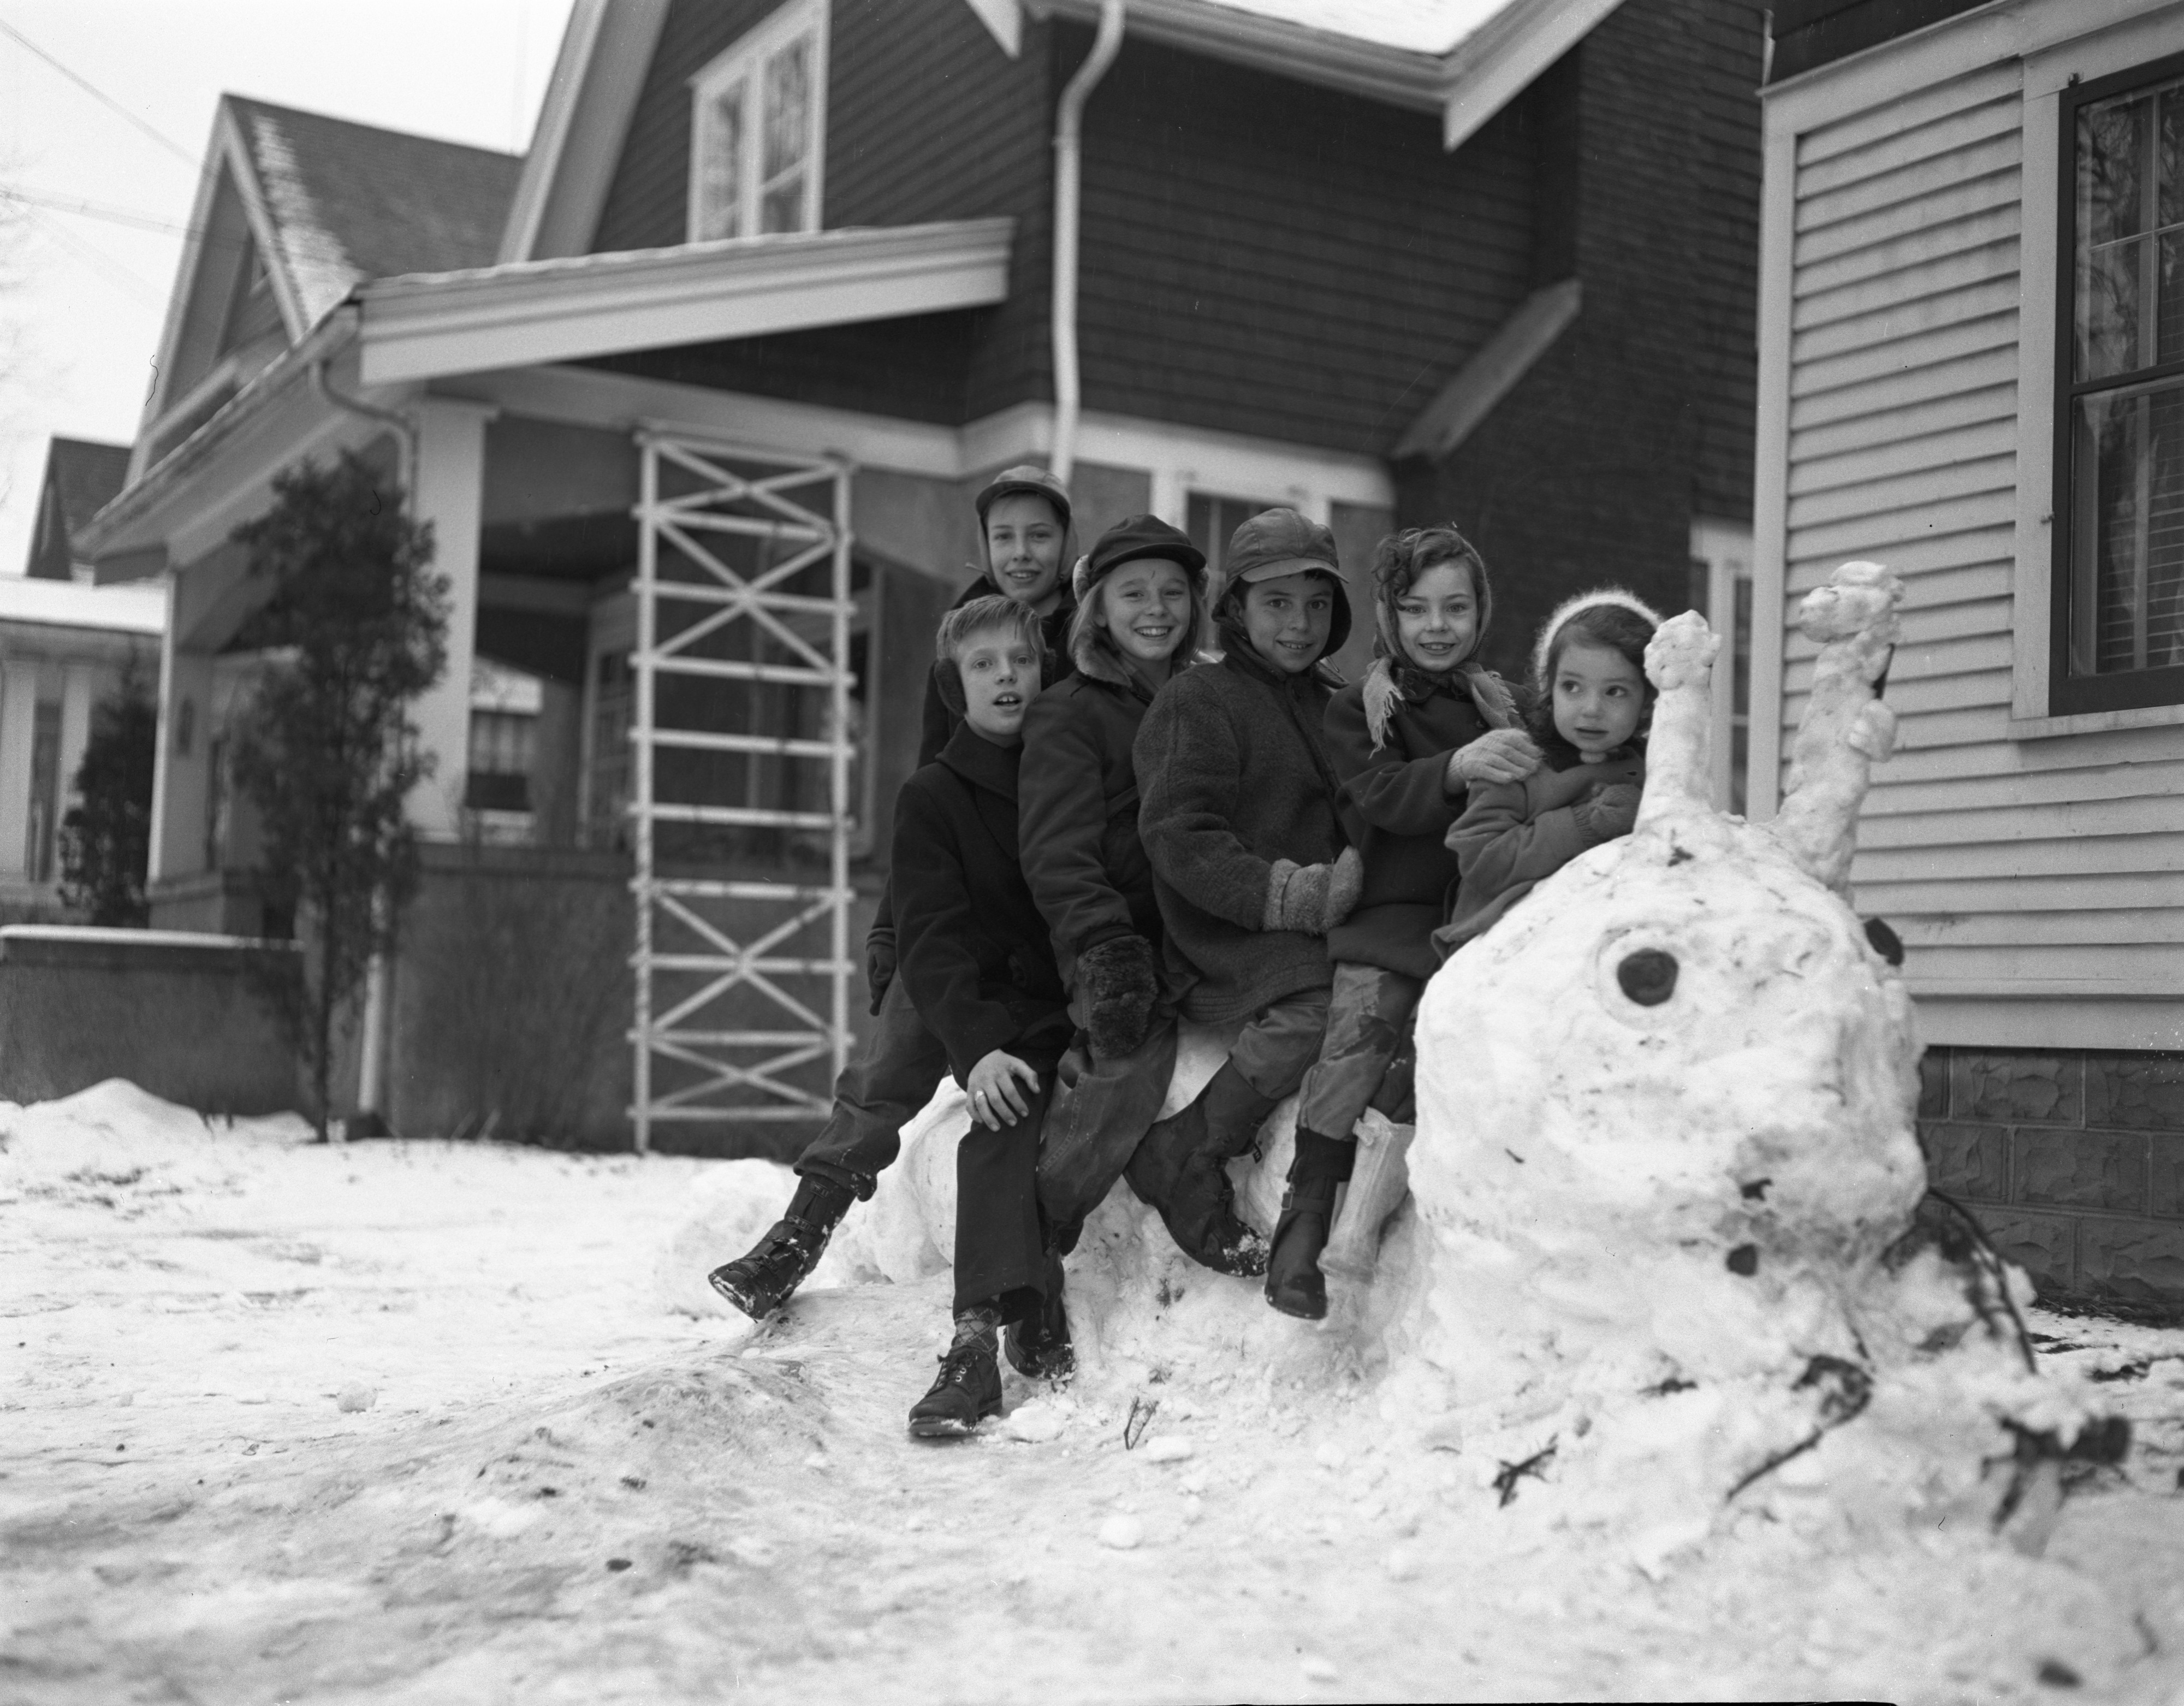 Children Ride Snow Caterpillar On Dewey Avenue, January 1952 image